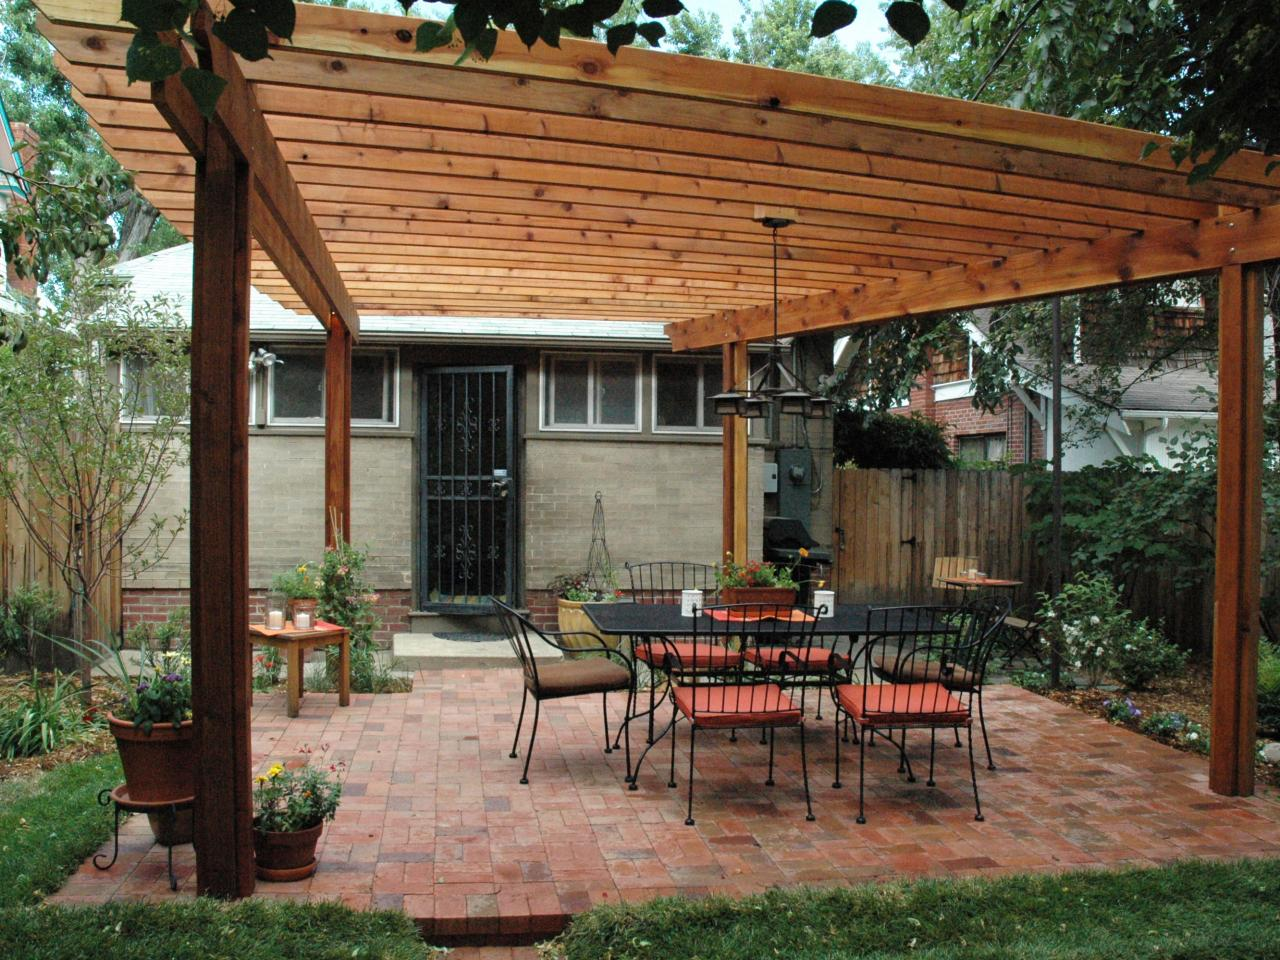 Arbor Installation-Rowlett TX Professional Landscapers & Outdoor Living Designs-We offer Landscape Design, Outdoor Patios & Pergolas, Outdoor Living Spaces, Stonescapes, Residential & Commercial Landscaping, Irrigation Installation & Repairs, Drainage Systems, Landscape Lighting, Outdoor Living Spaces, Tree Service, Lawn Service, and more.